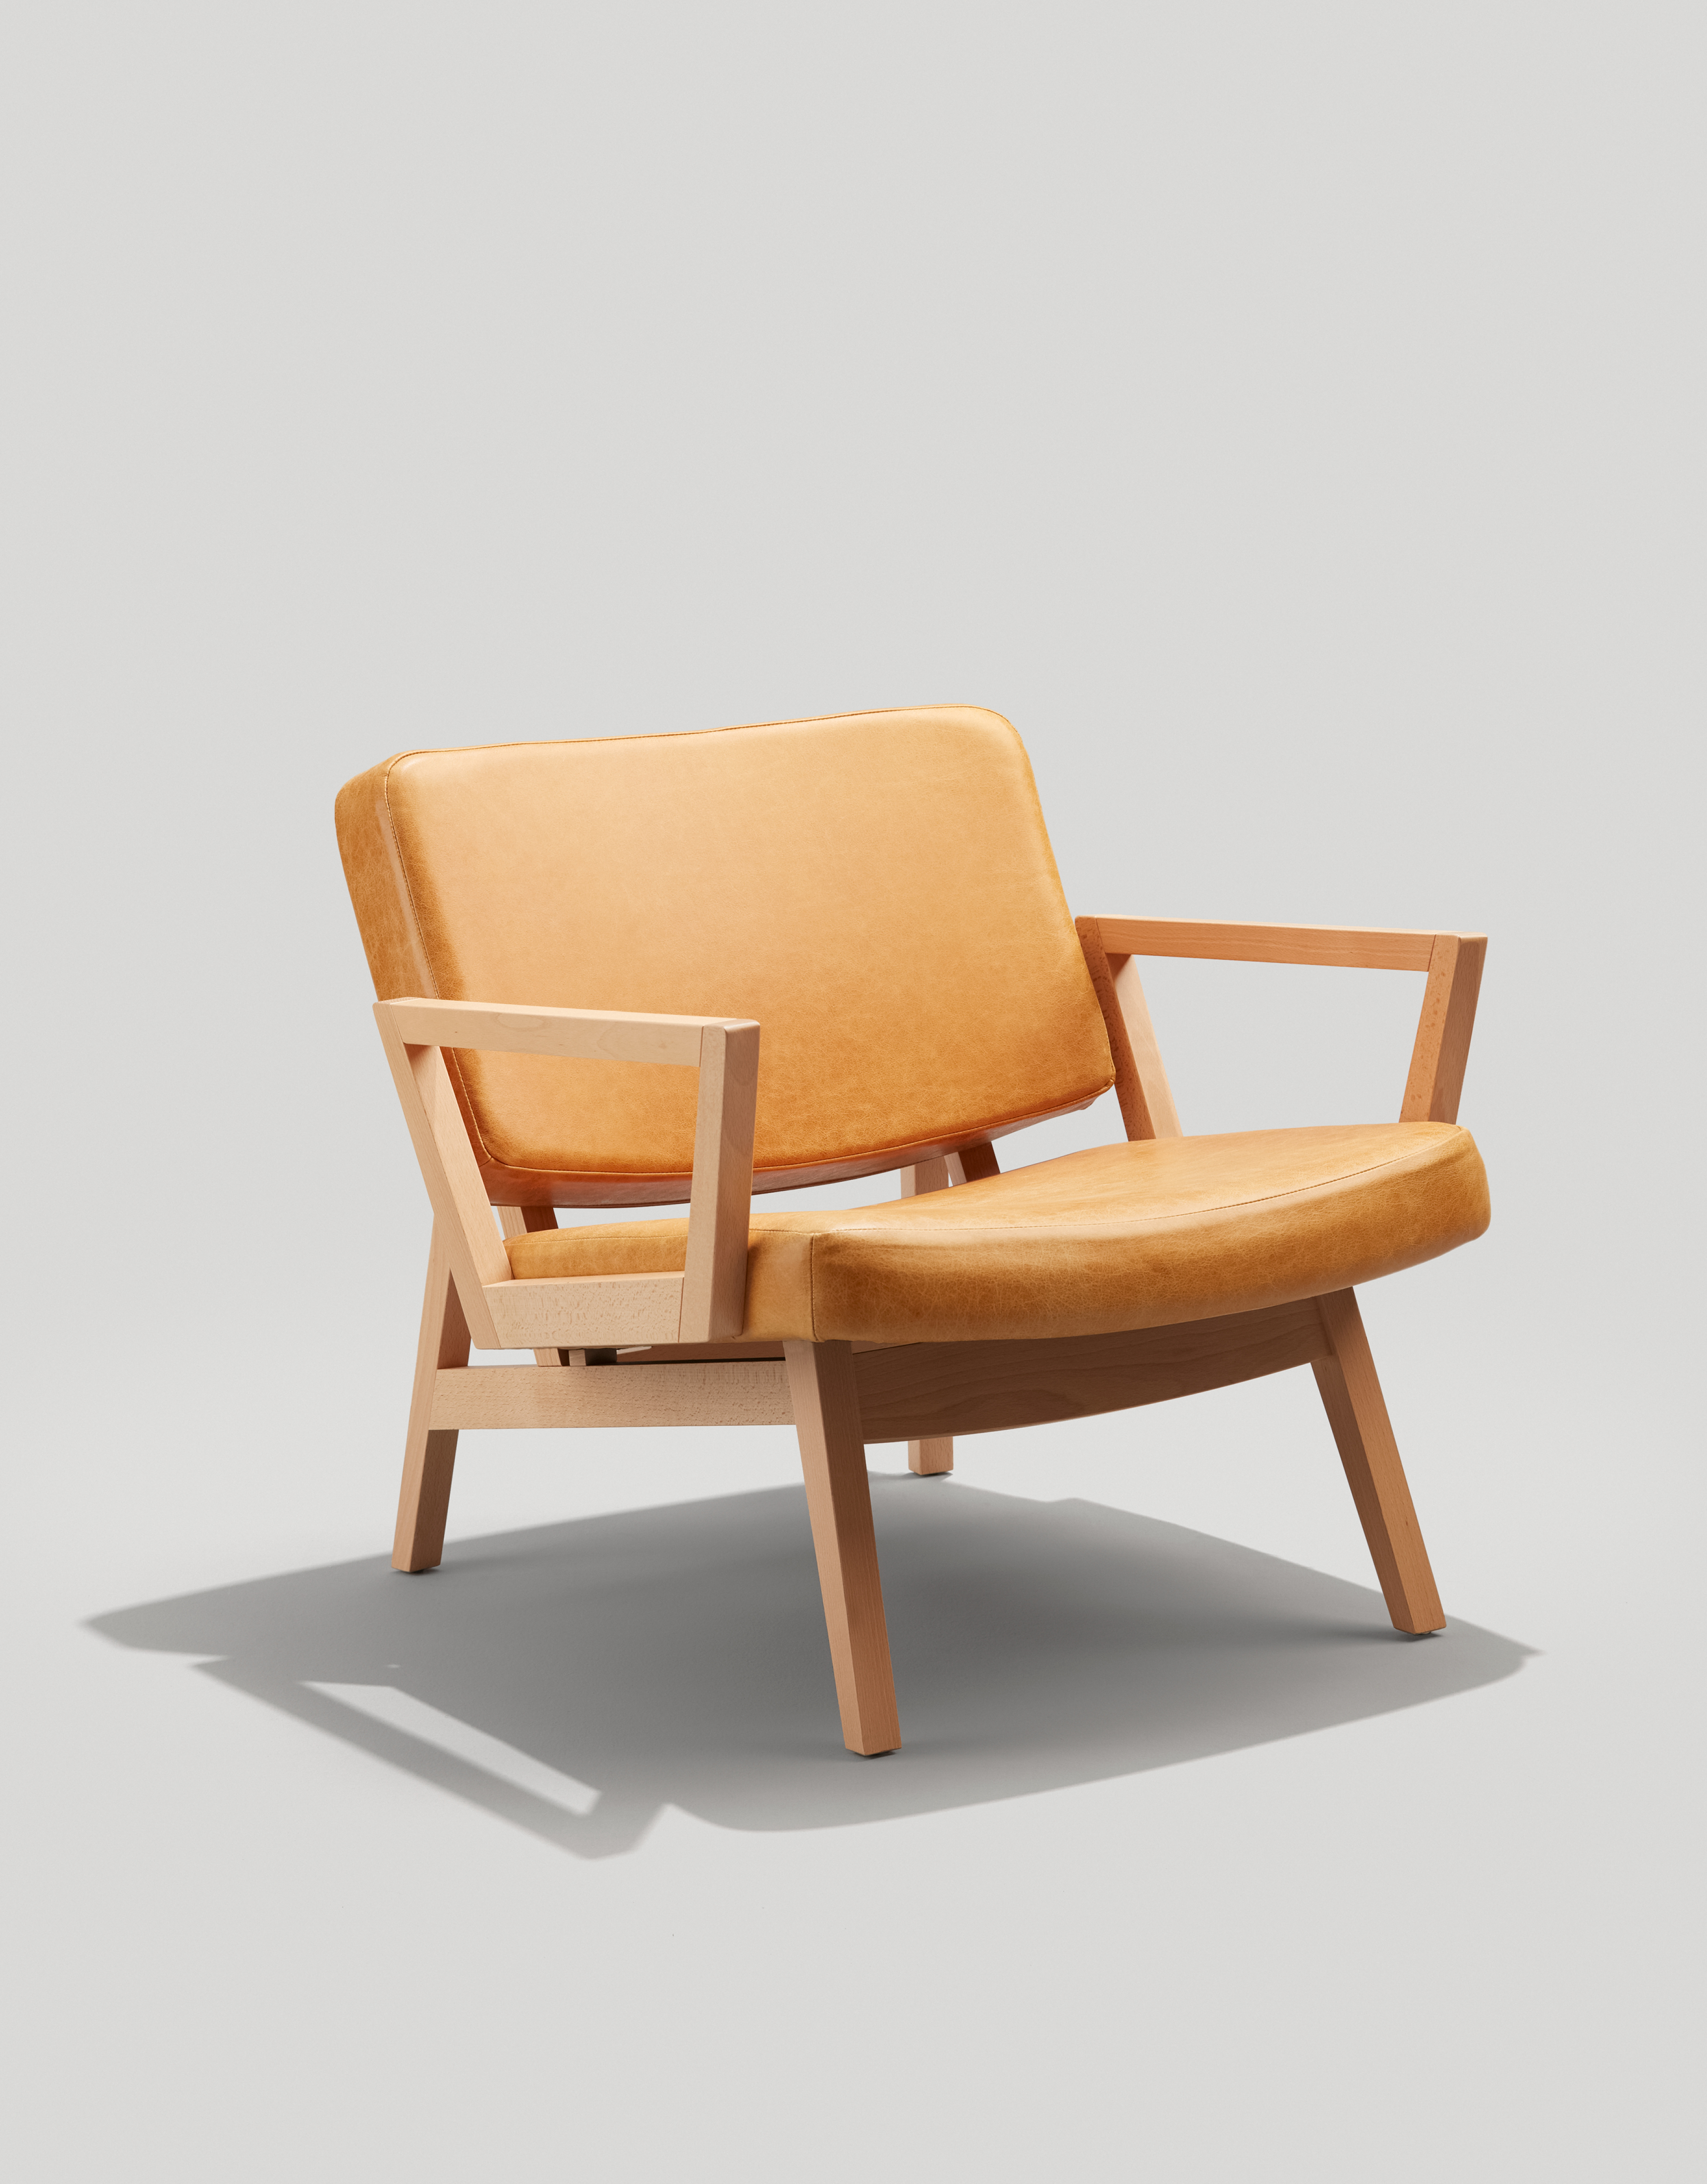 Andy Lounge mid century modern lounge chair